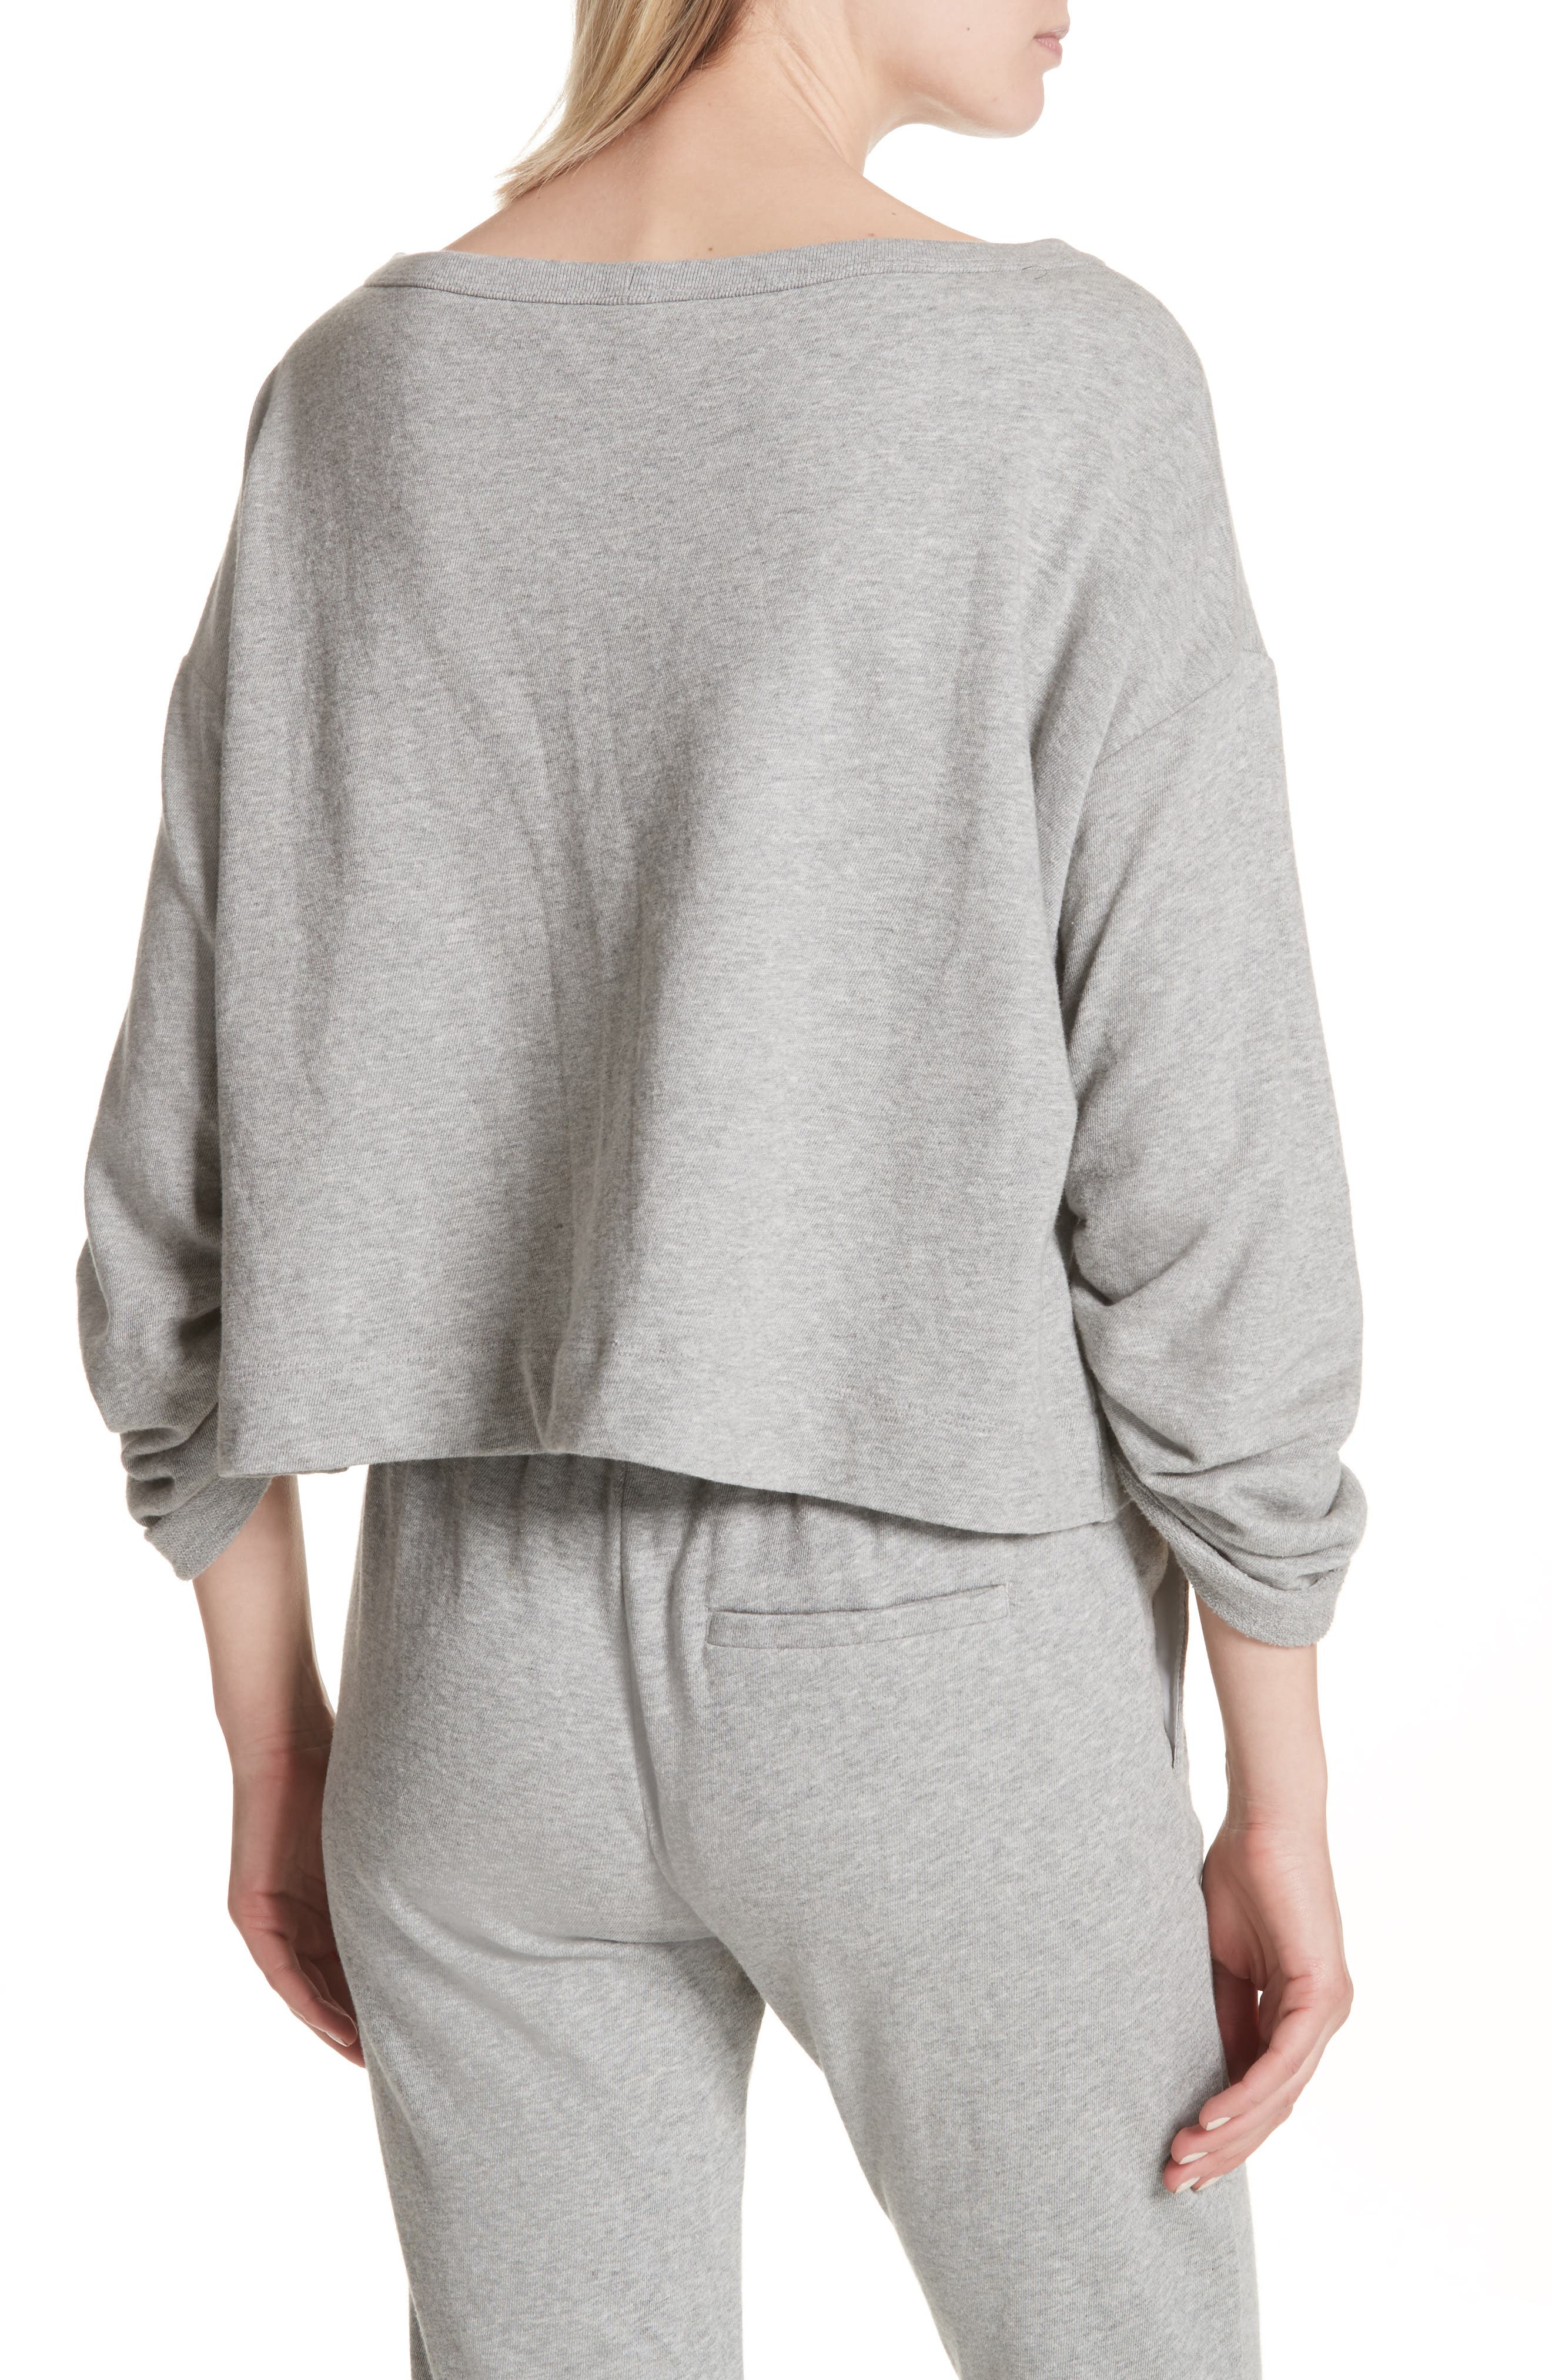 Ember Ruched Sleeve Sweatshirt,                             Alternate thumbnail 2, color,                             Heather Grey